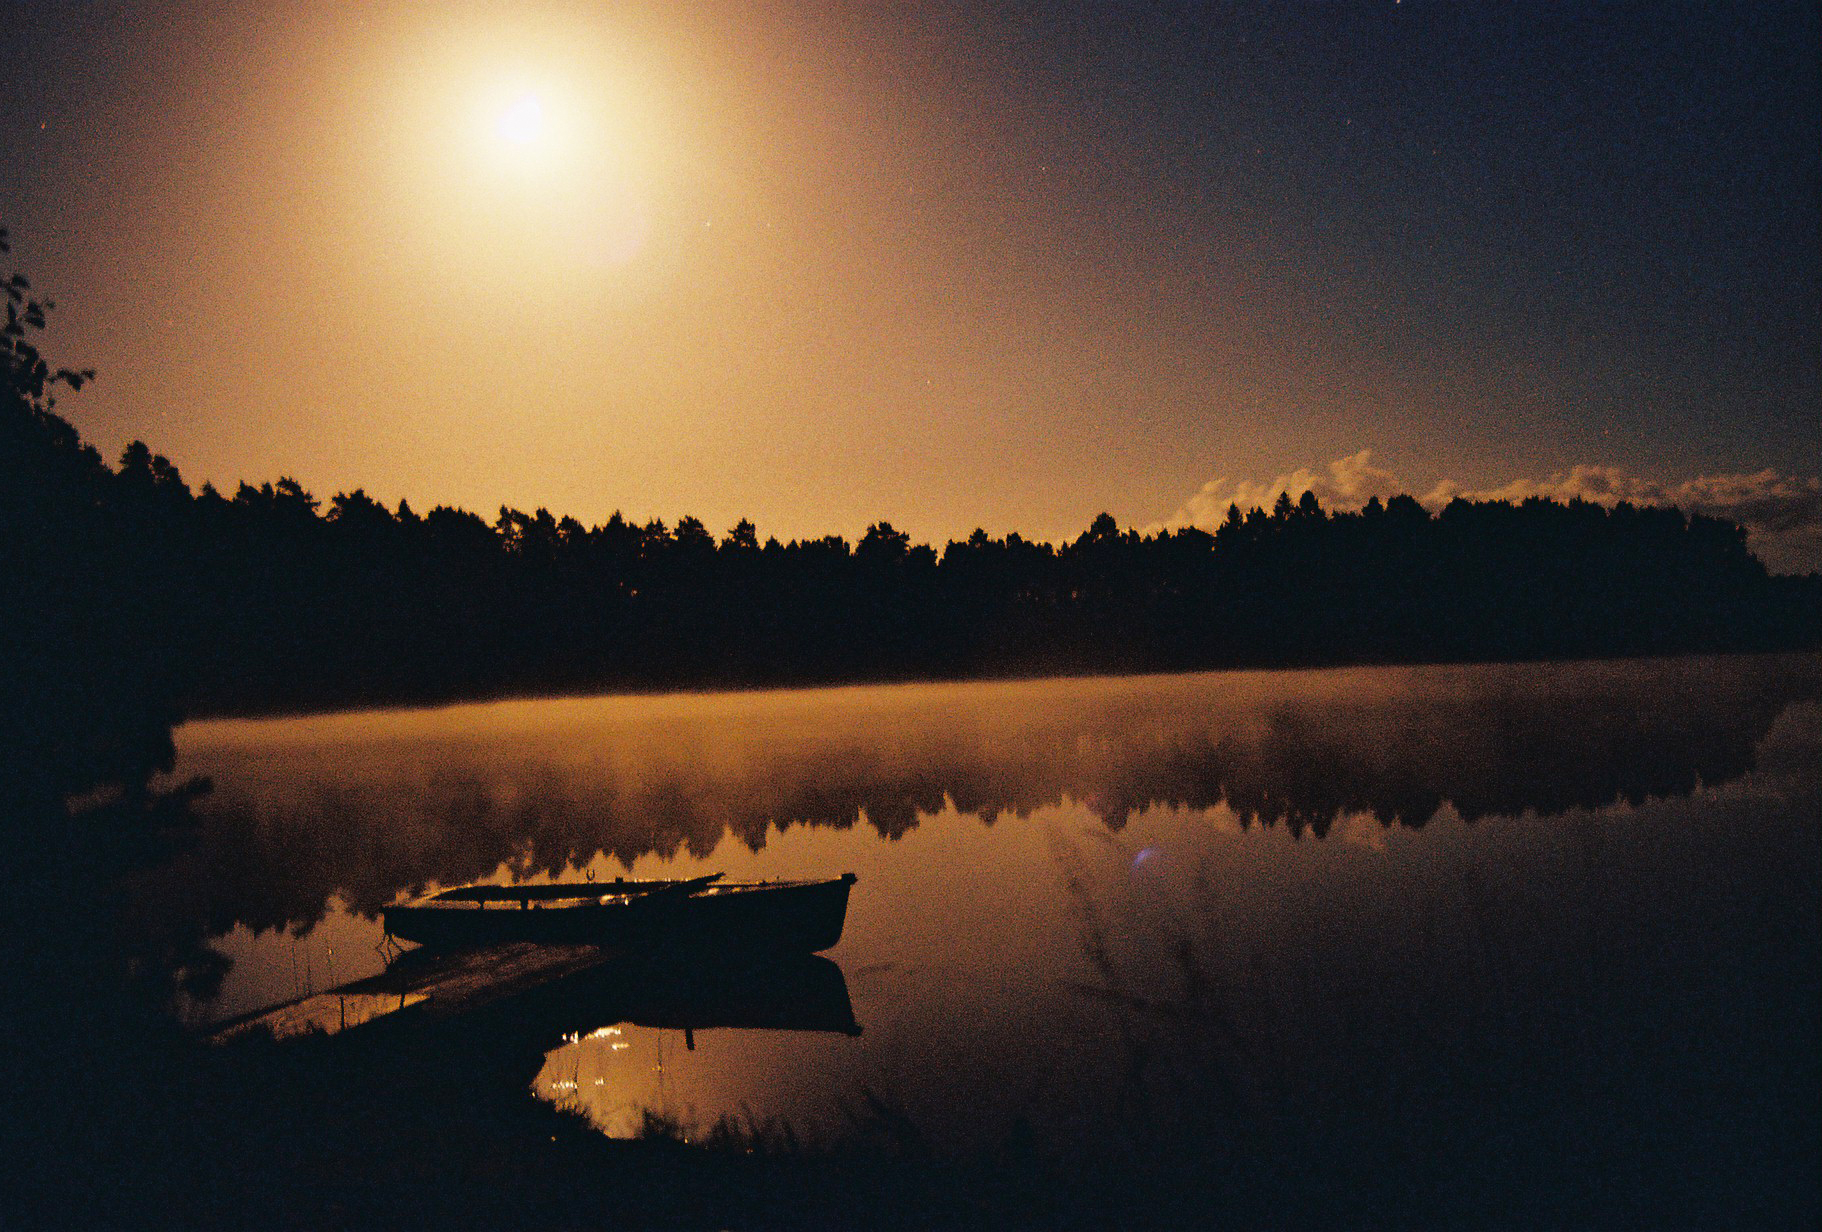 Boat In Moonlight - Part II